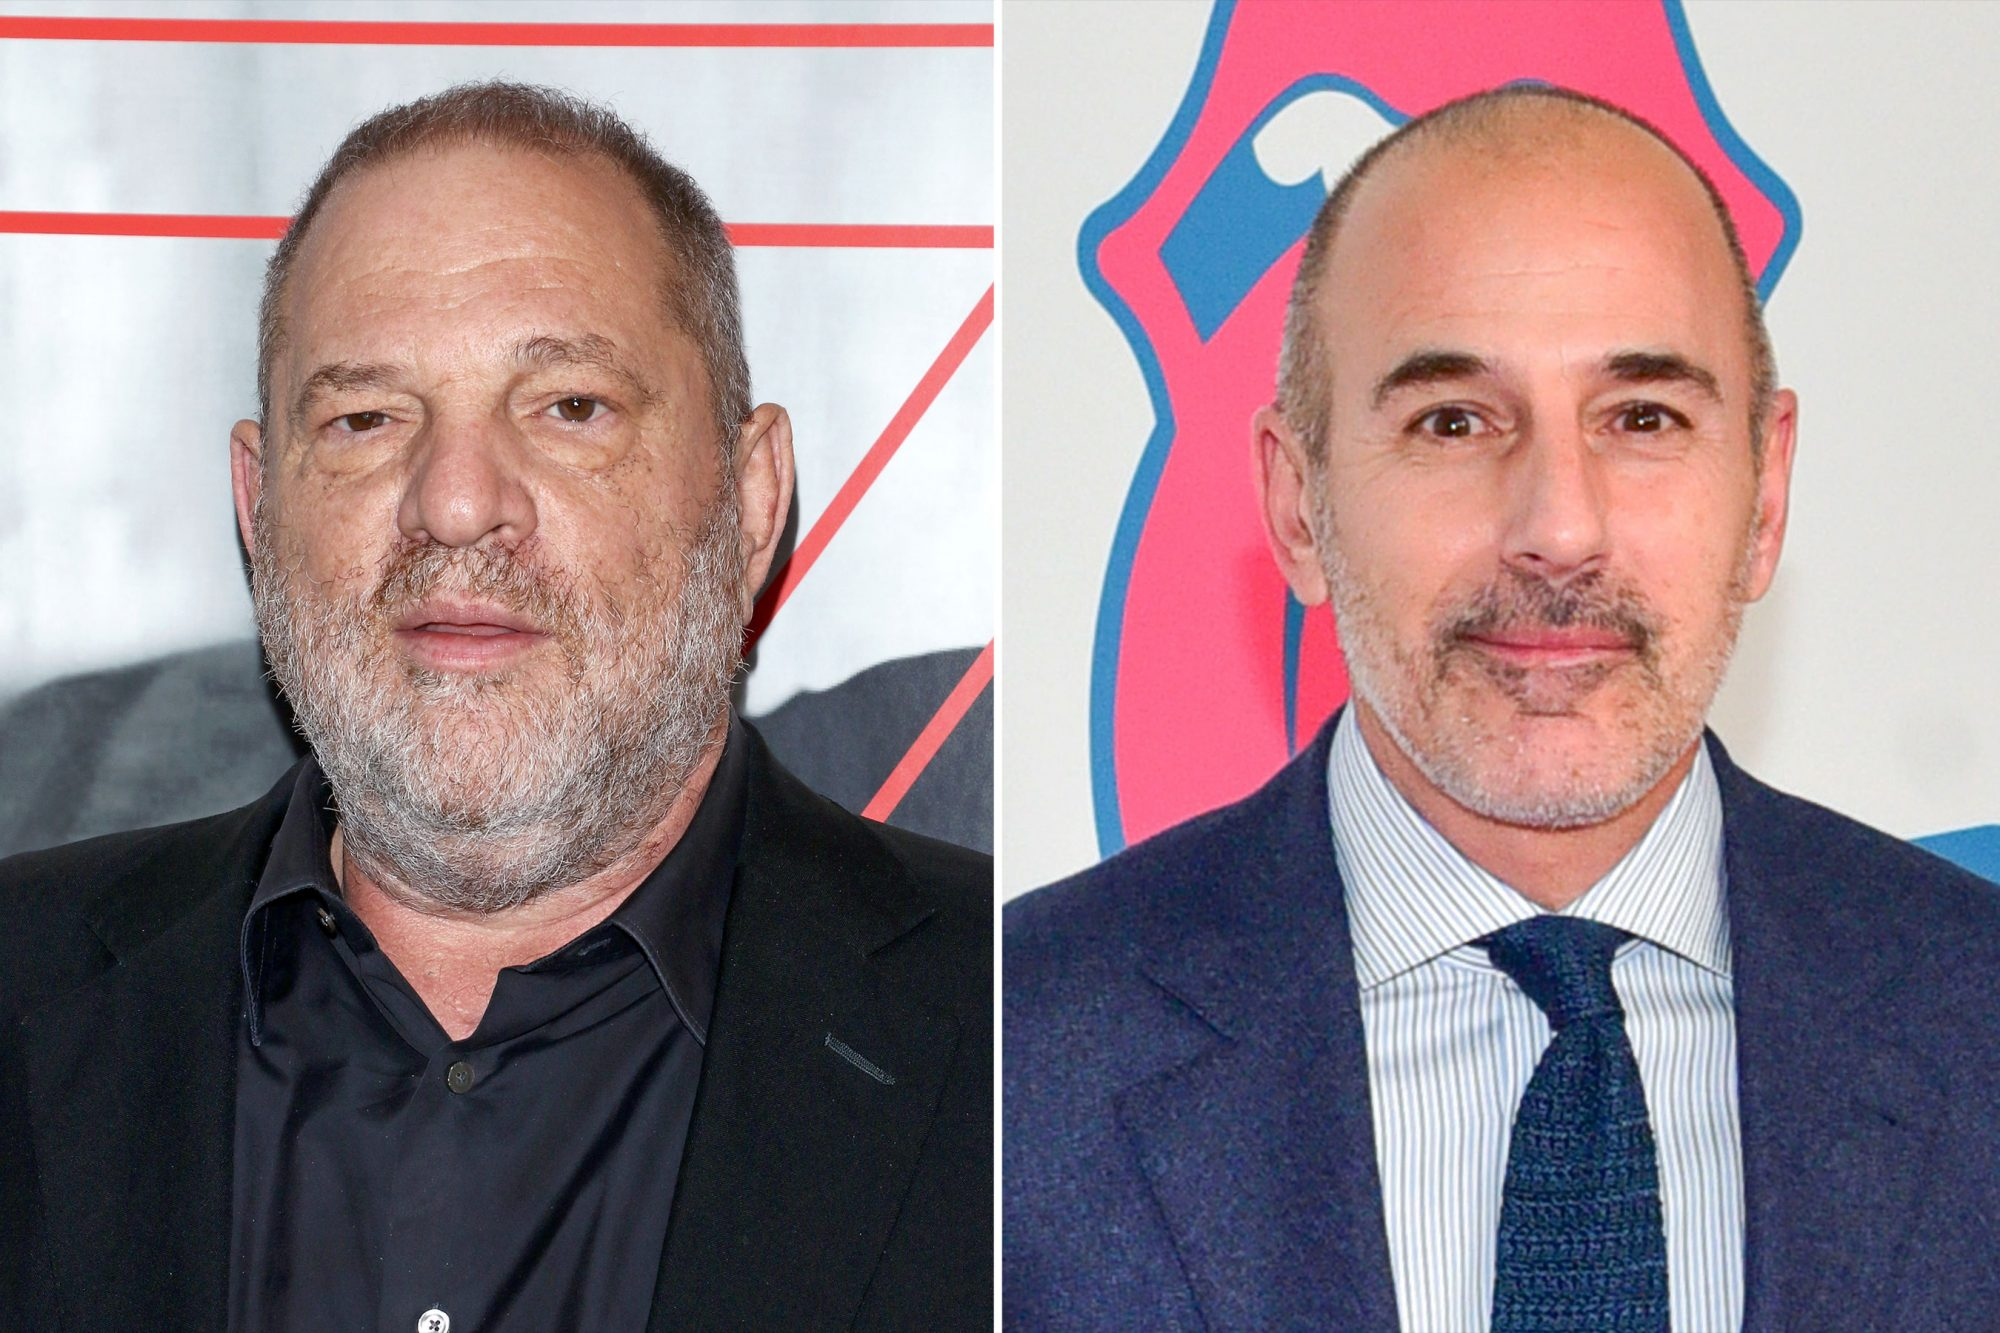 Harvey Weinstein and Matt Lauer